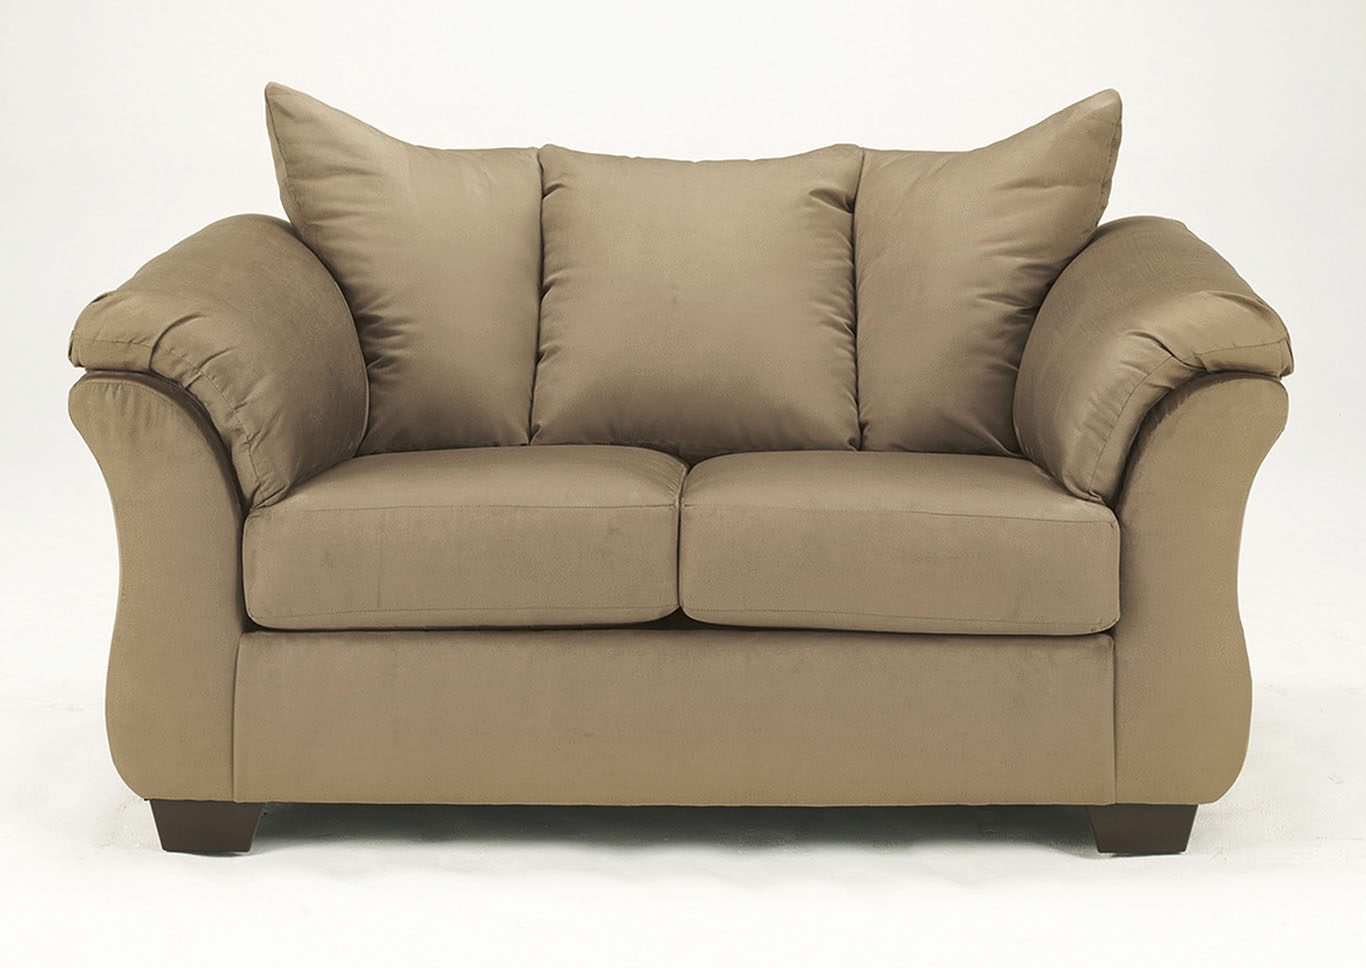 Darcy Mocha Loveseat,ABF Signature Design by Ashley